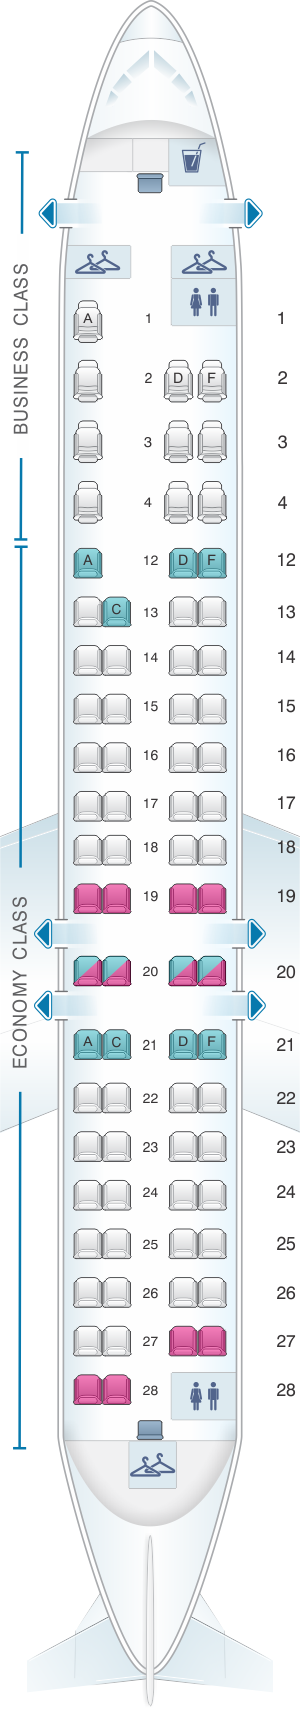 Seat map for Air Canada Bombardier CRJ705